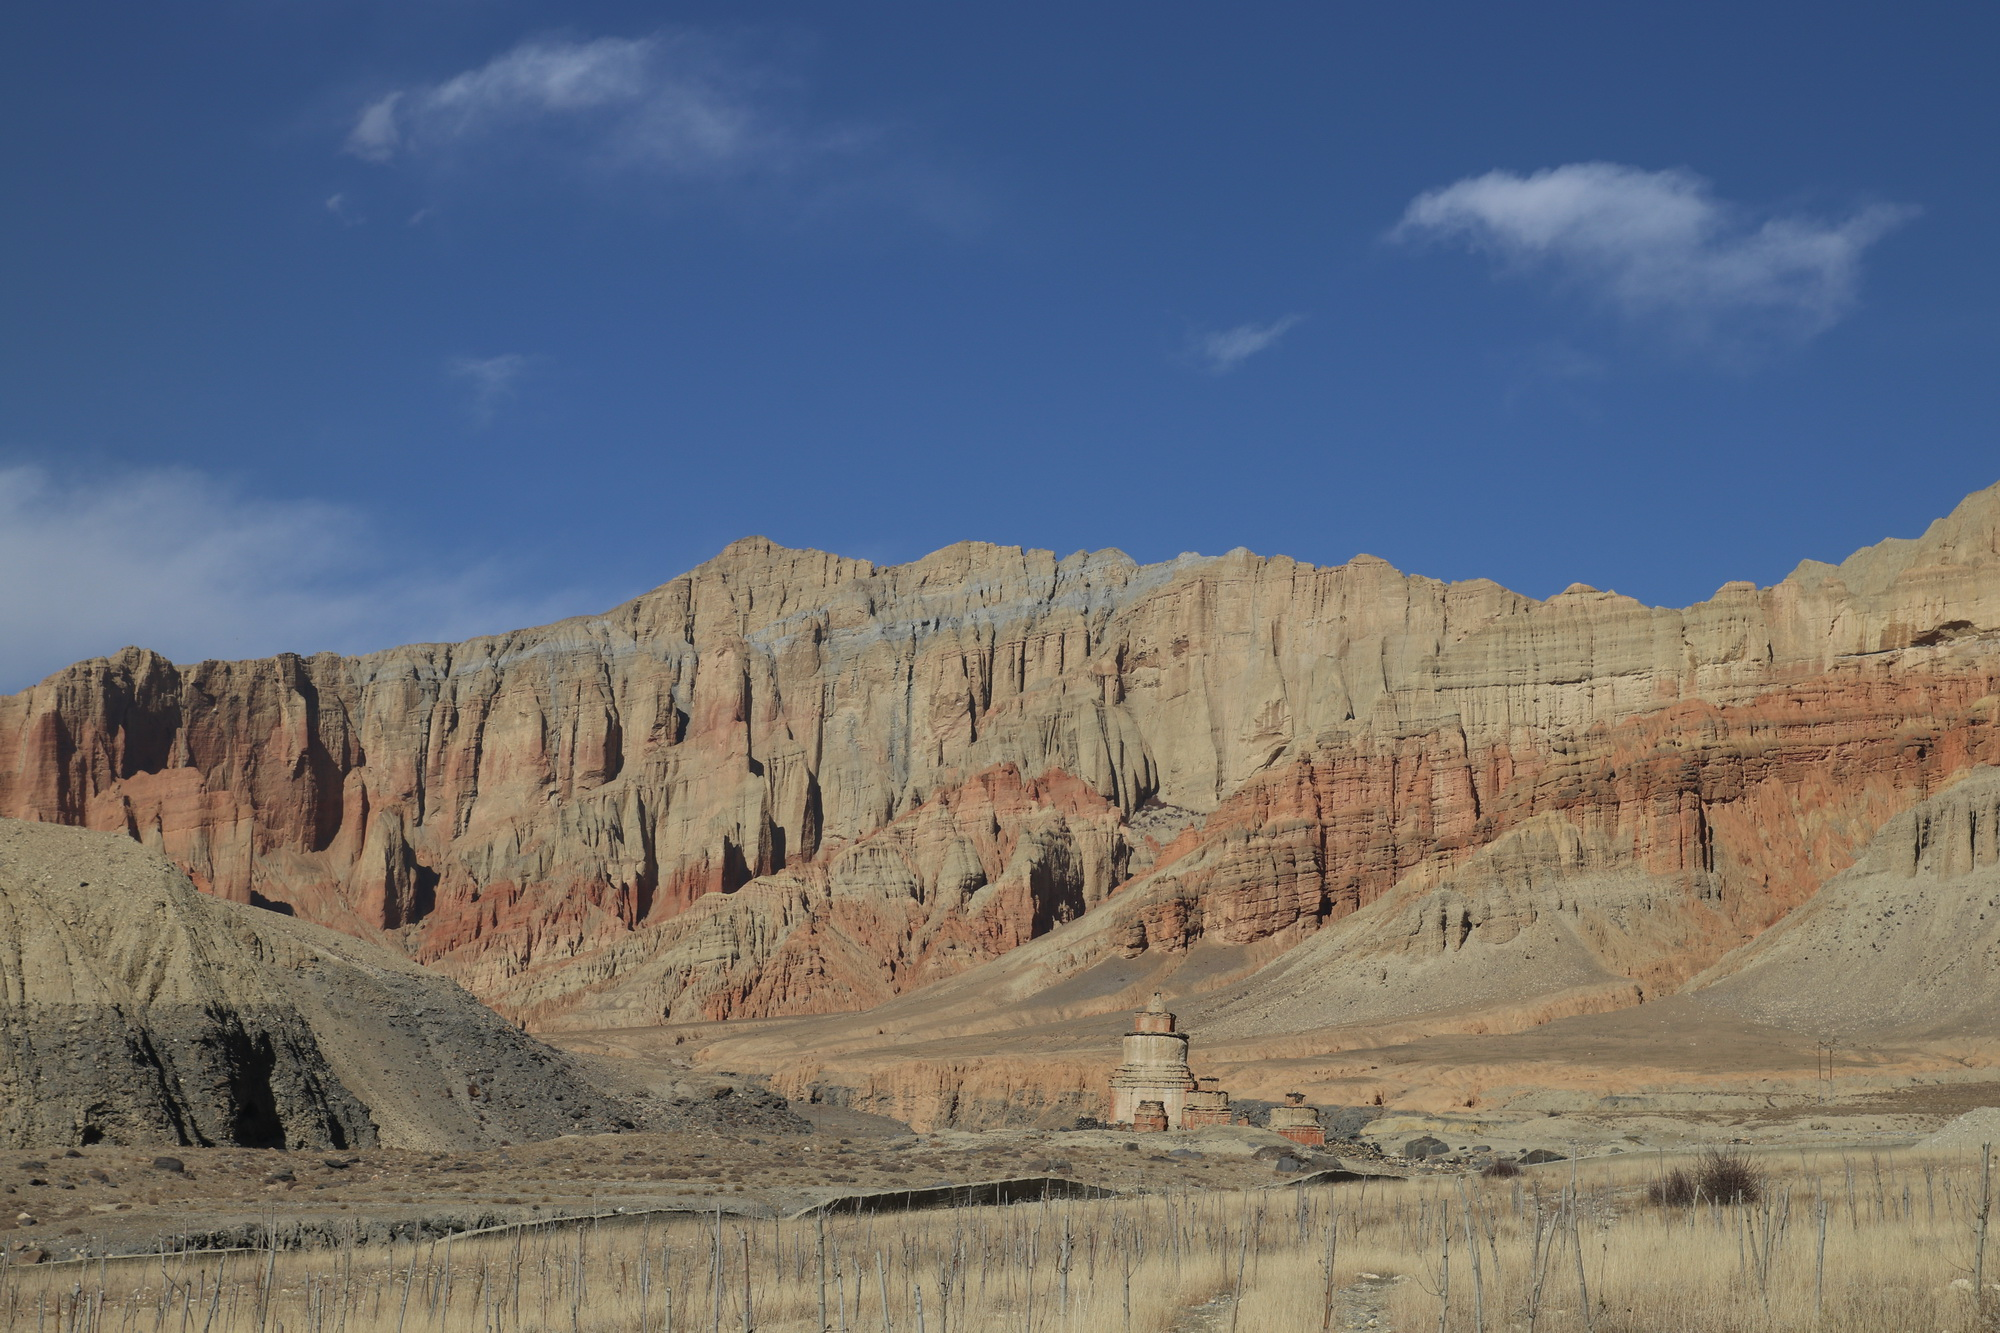 Ghami to Tsarang mountains - Upper Mustang Trek